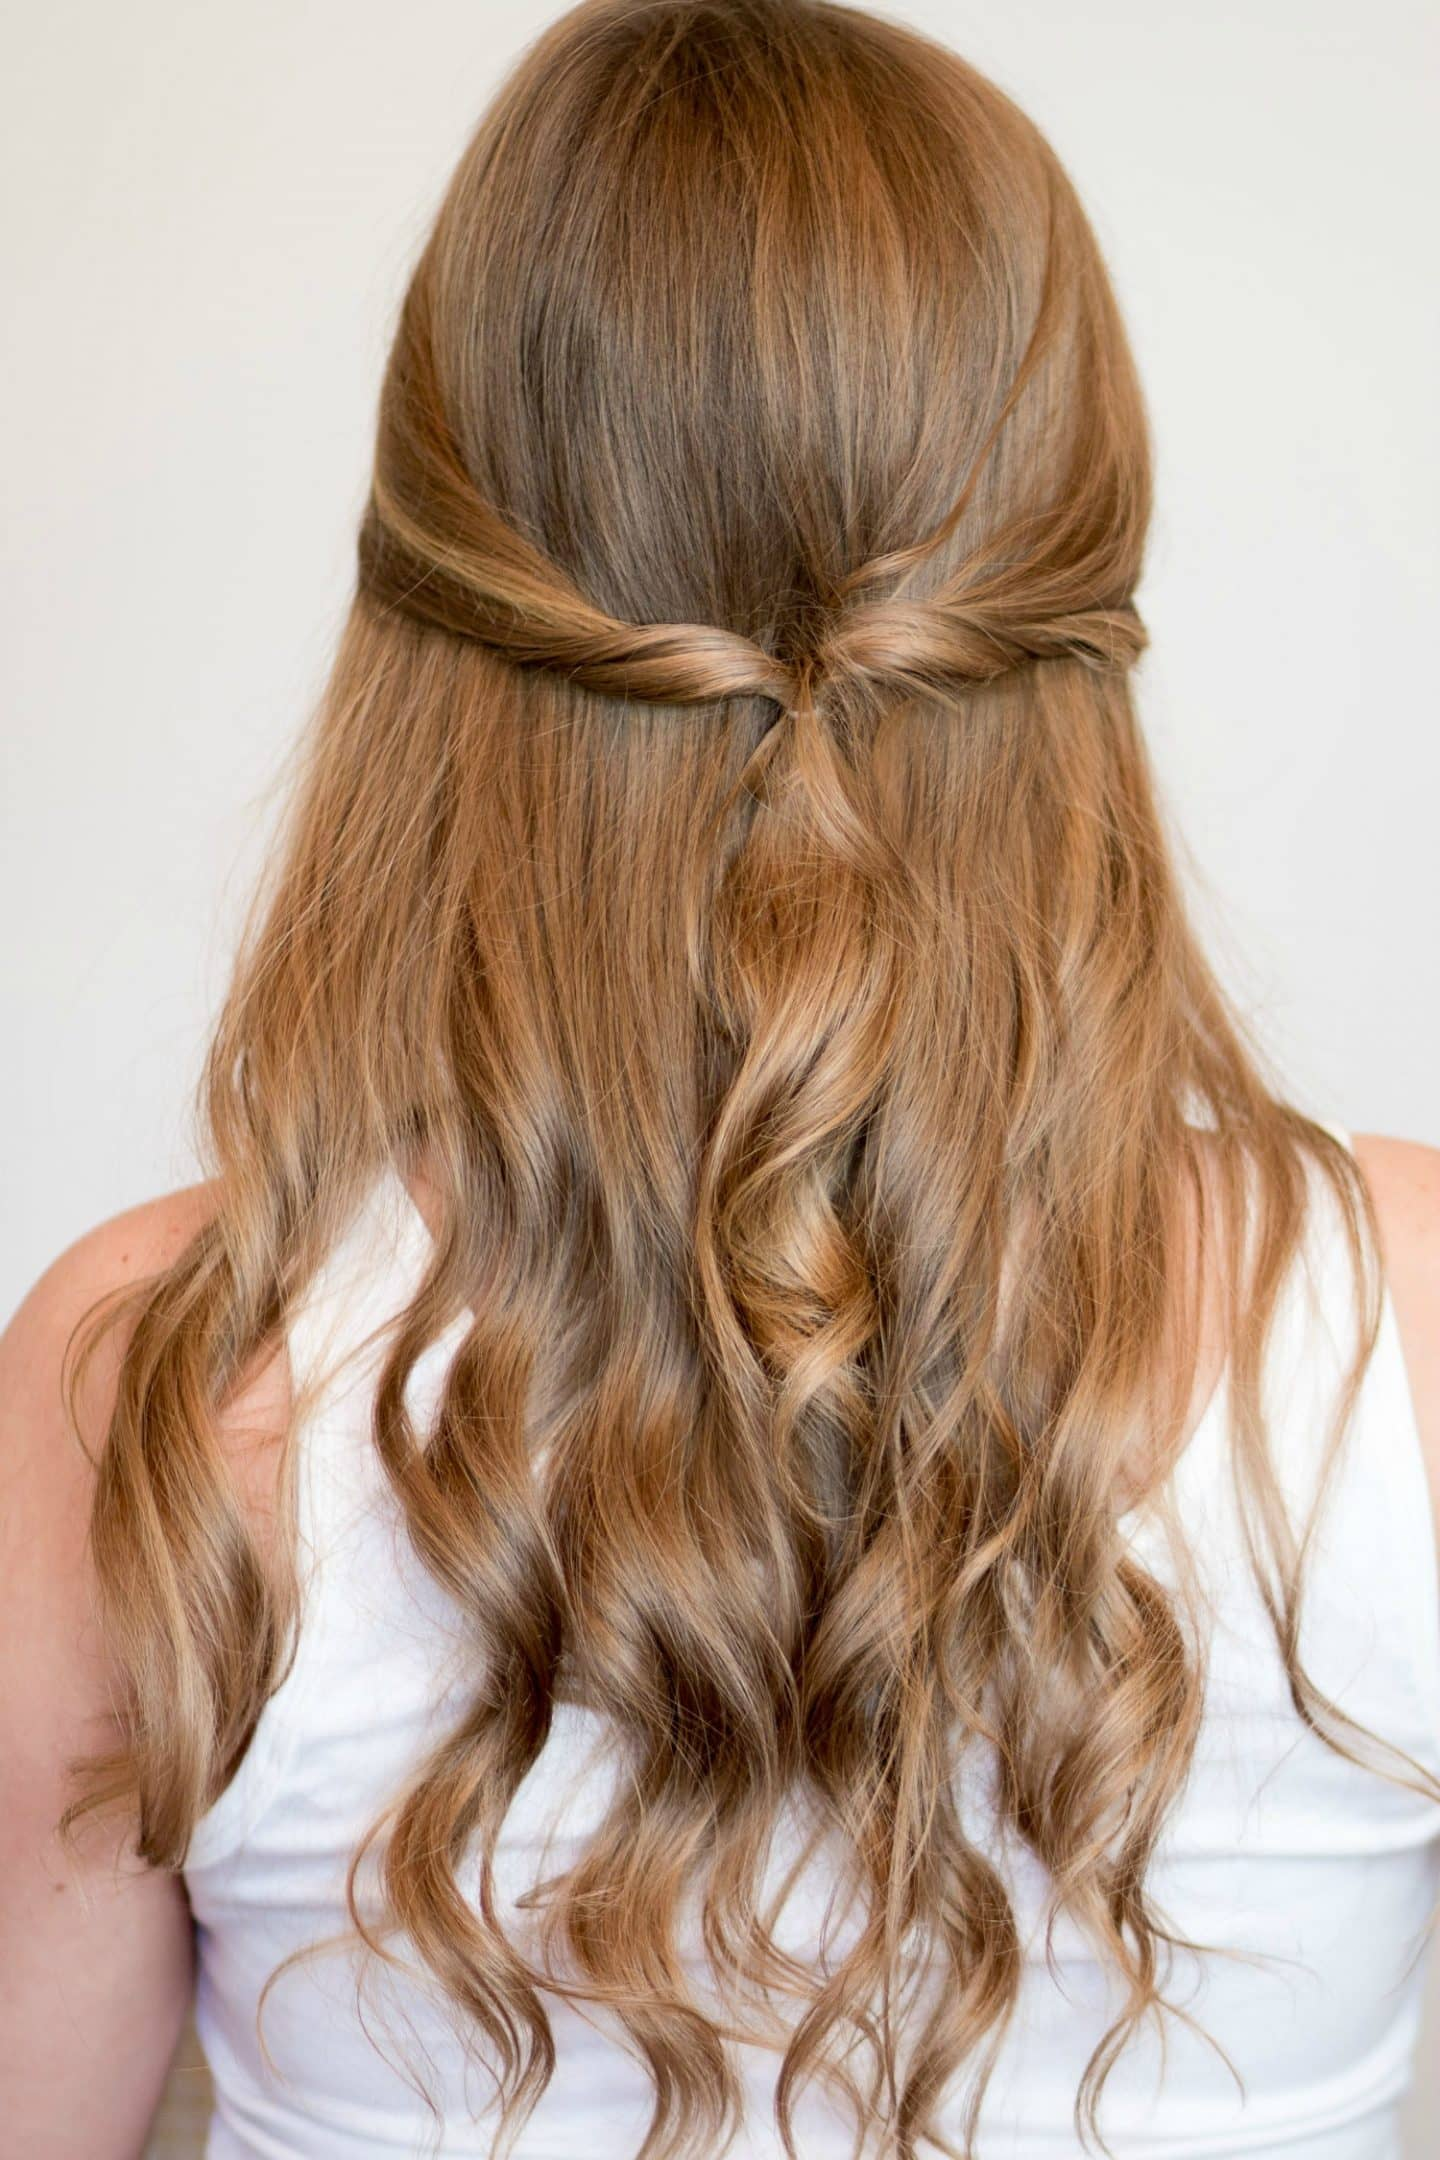 Twisted half-up half-down heatless hairstyle tutorial | 4 Easy heatless hairstyles for long hair that don't require hair styling skills or braiding! Learn how to create a faux braided ponytail, messy faux fishtail braid, twisted half-up, and messy braided bun in these easy hair tutorial by Orlando, Florida beauty blogger Ashley Brooke Nicholas! #MyHCLook sponsored by Hair Cuttery! | easy hairstyles, no-heat hairstyle